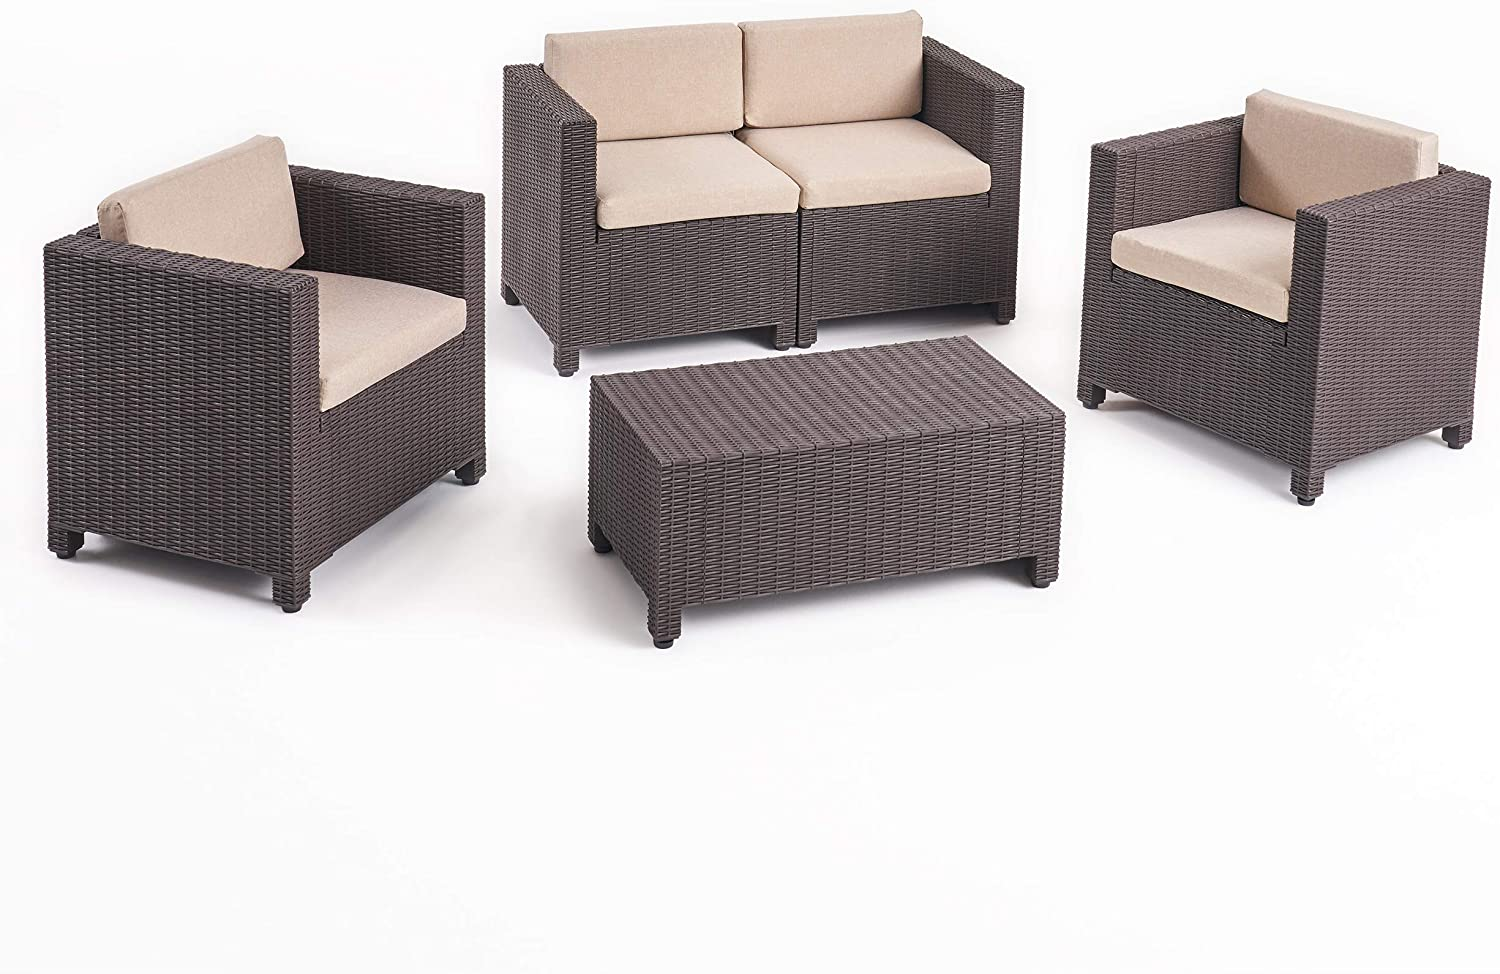 Christopher Knight Home 309023 Waverly All Weather Faux Wicker 4 Seater Chat Set with Cushions, Brown, Beige